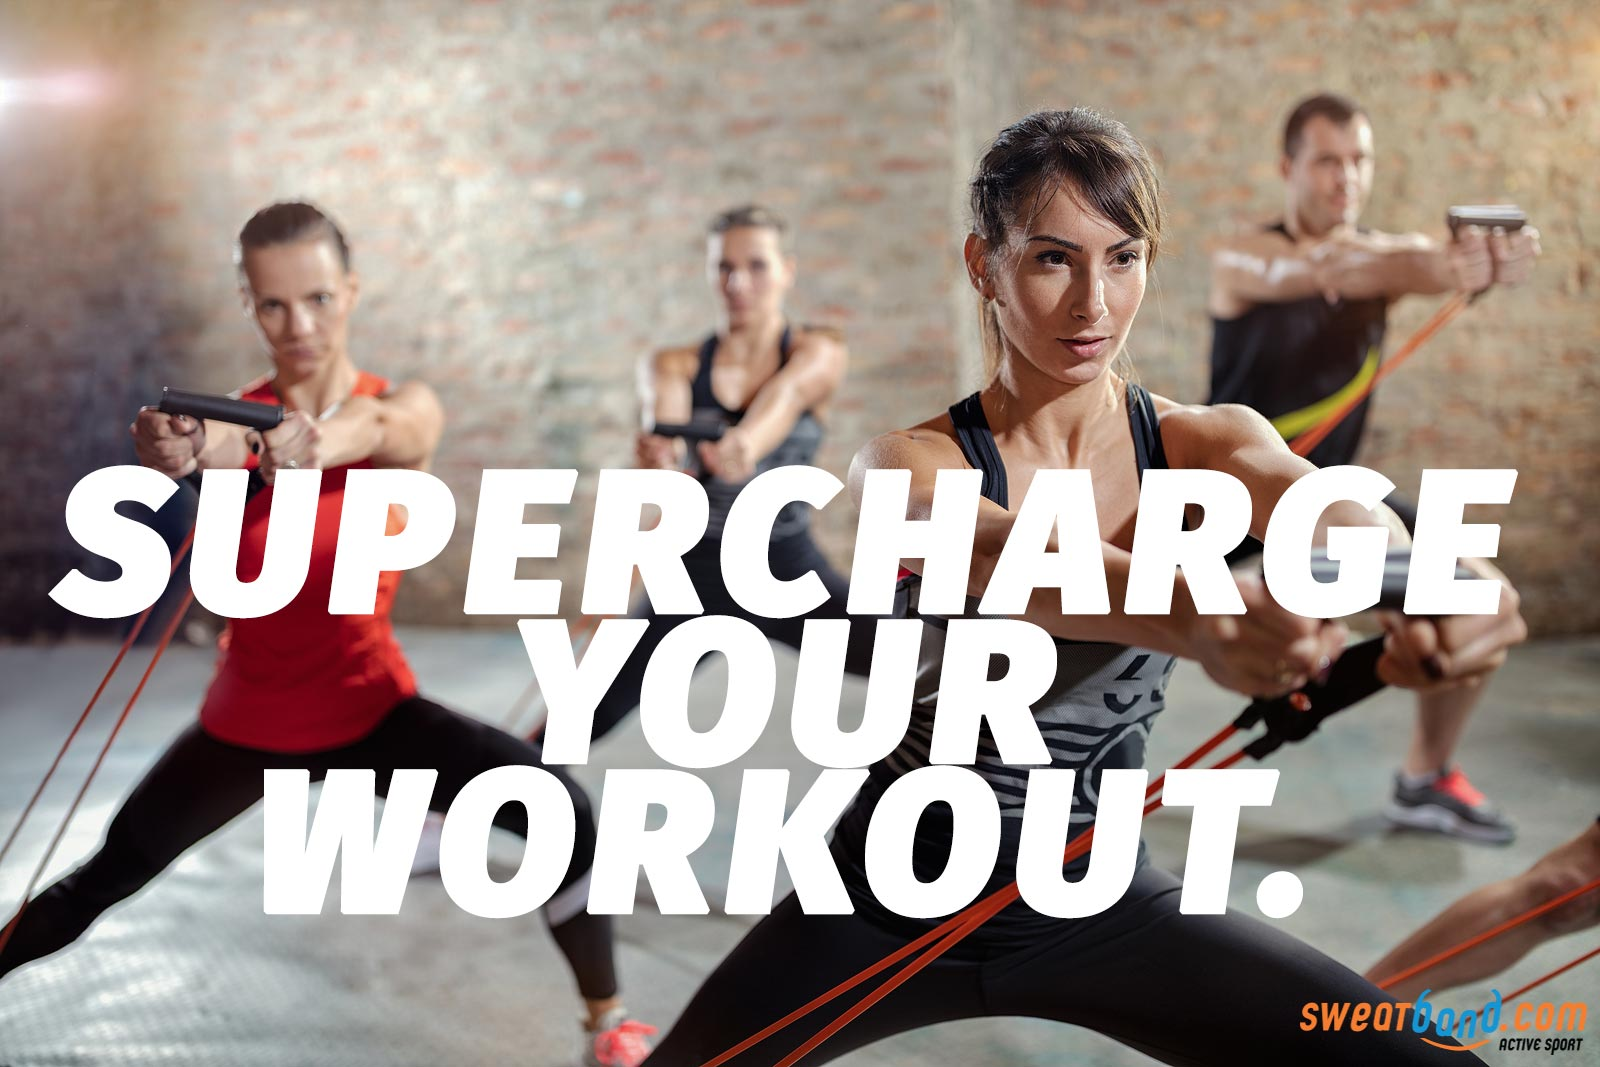 Supercharge your workout using resistance bands!